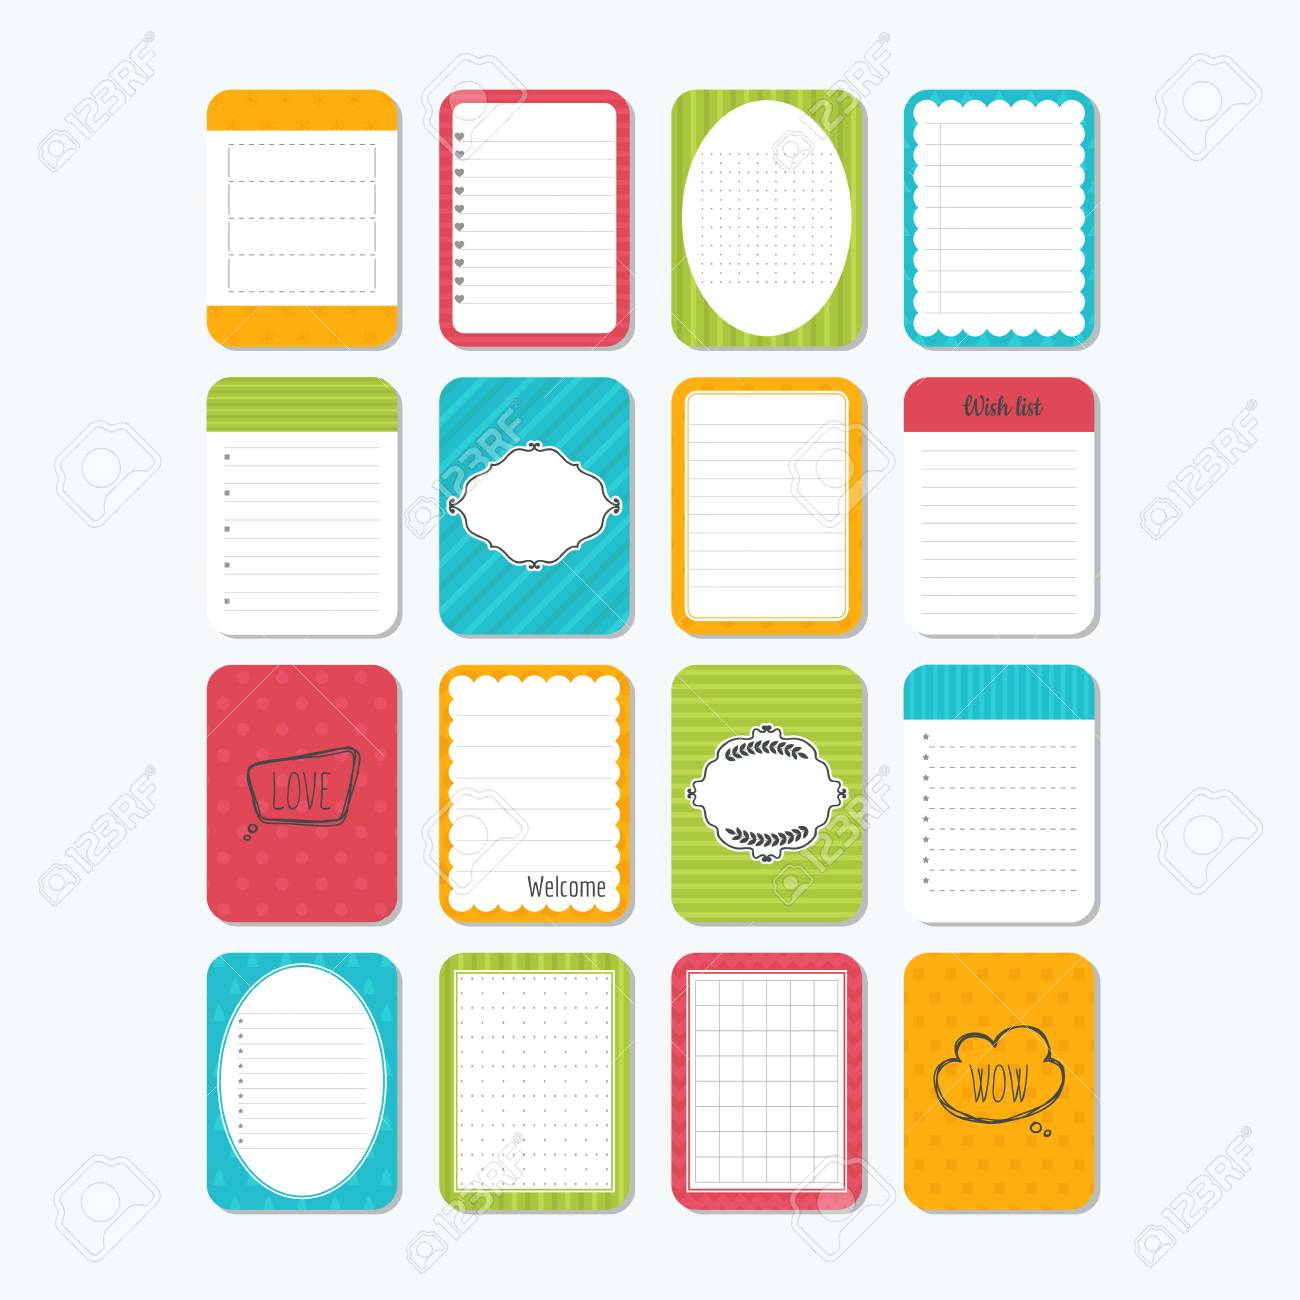 collection of various note papers. template for notebooks. cute